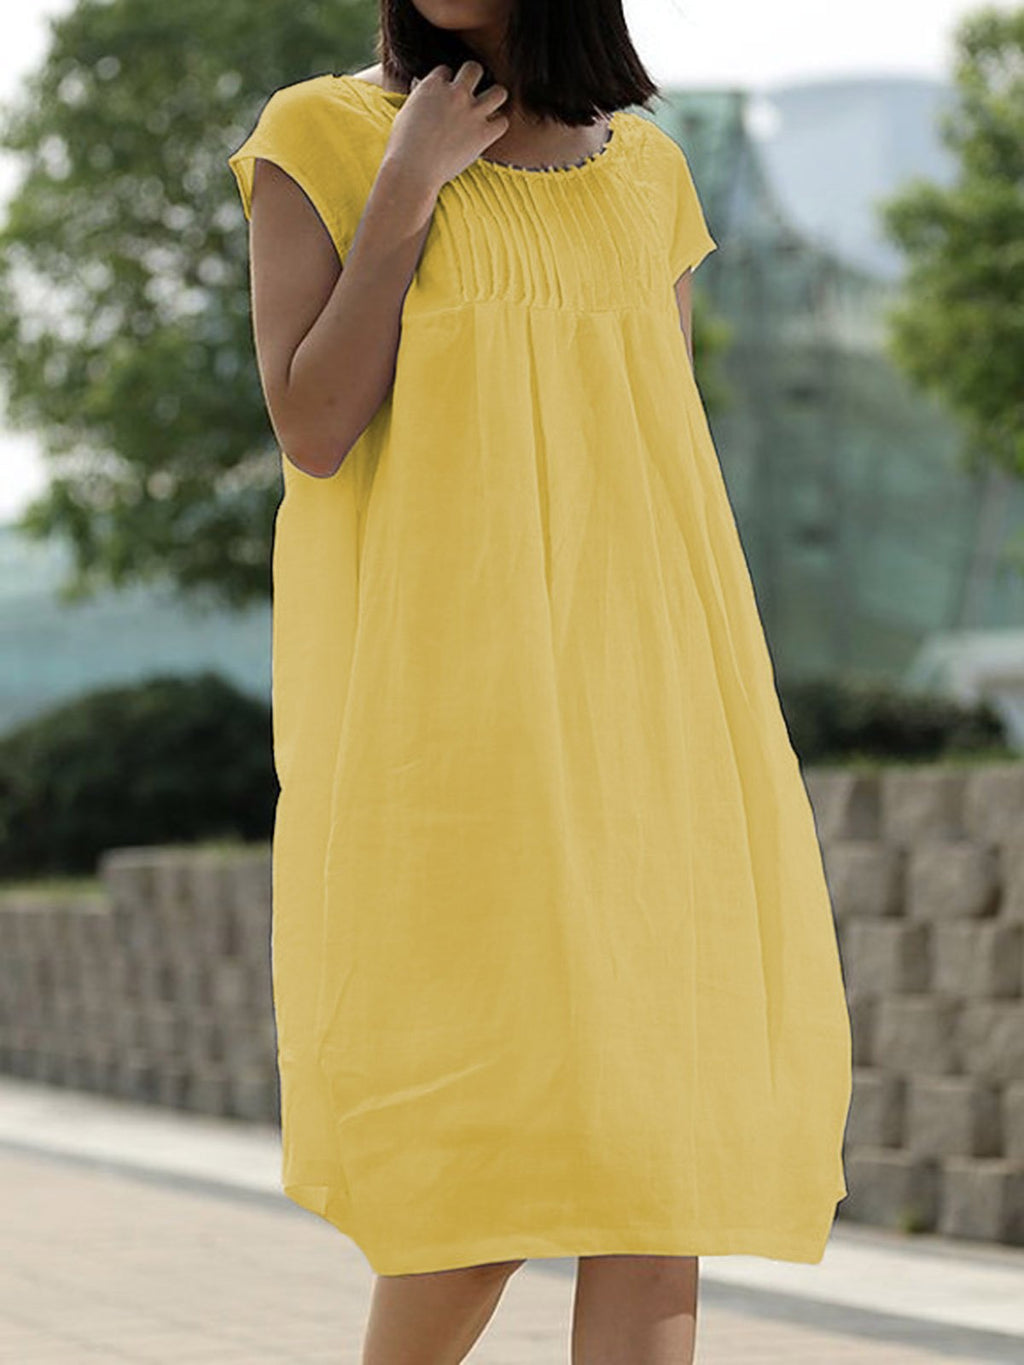 Summer Dress Pockets Pleated Details Cocoon Dresses